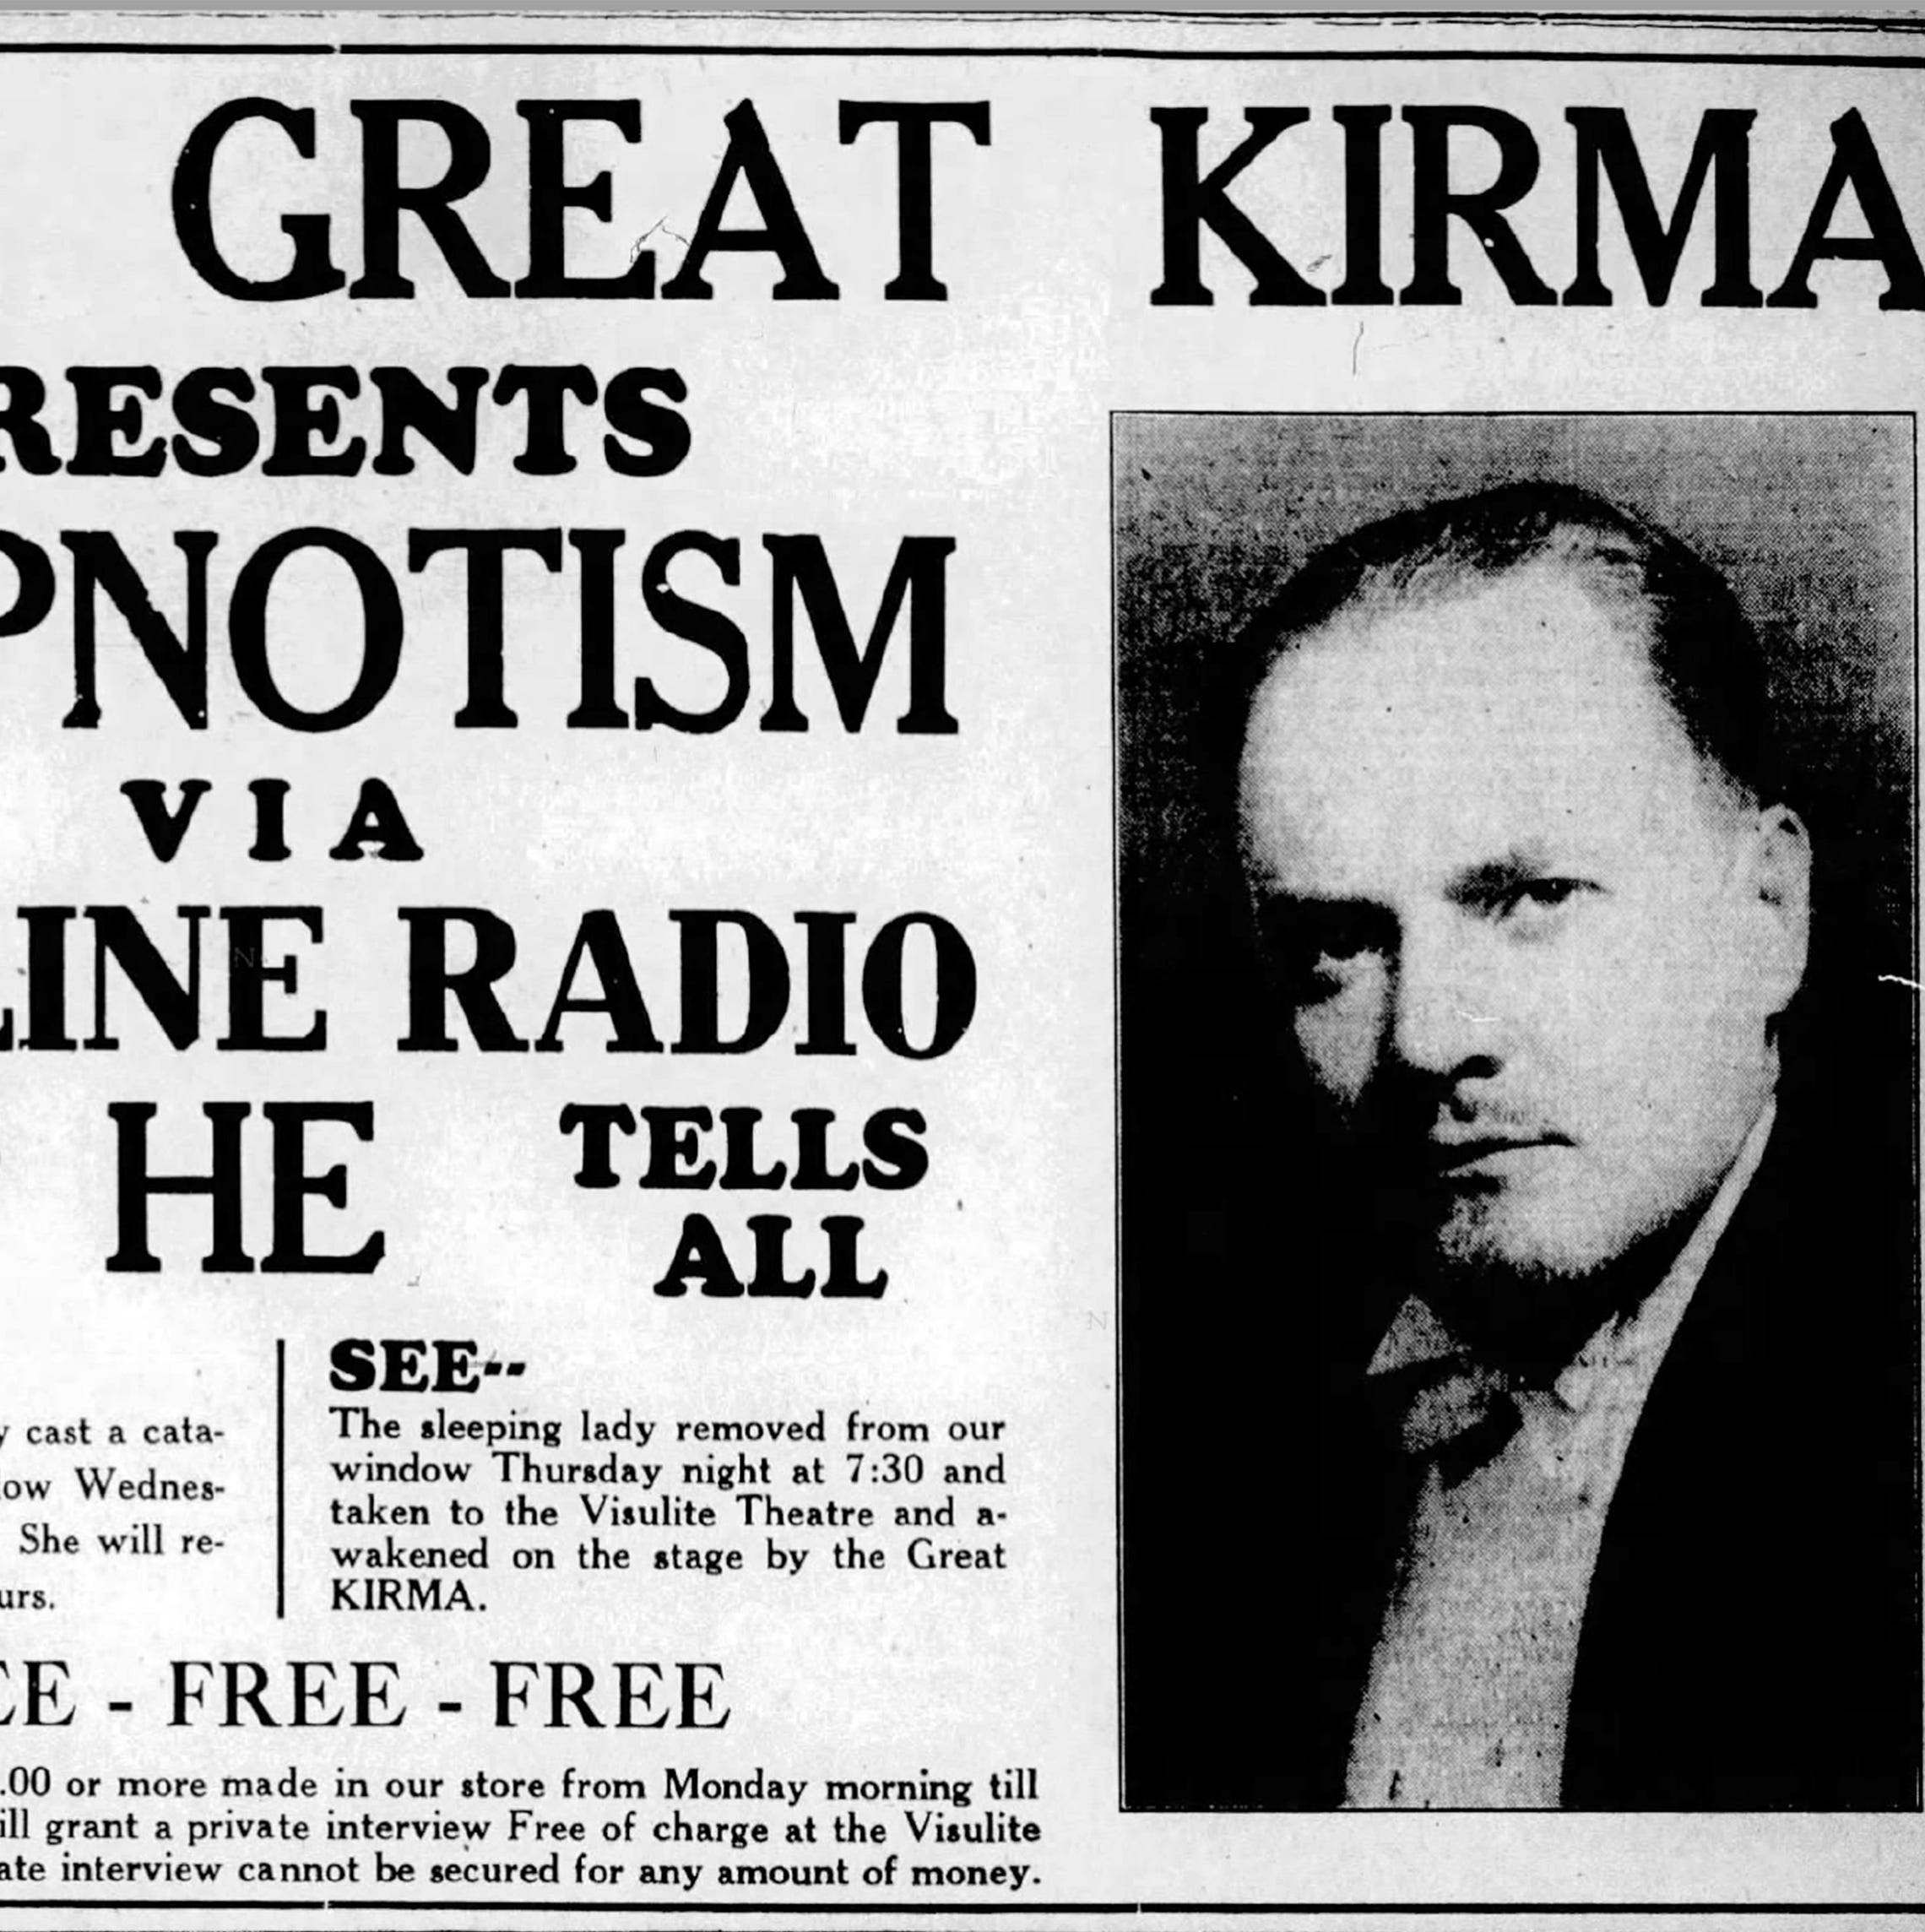 The Great Kirma wowed Staunton audiences in 1937